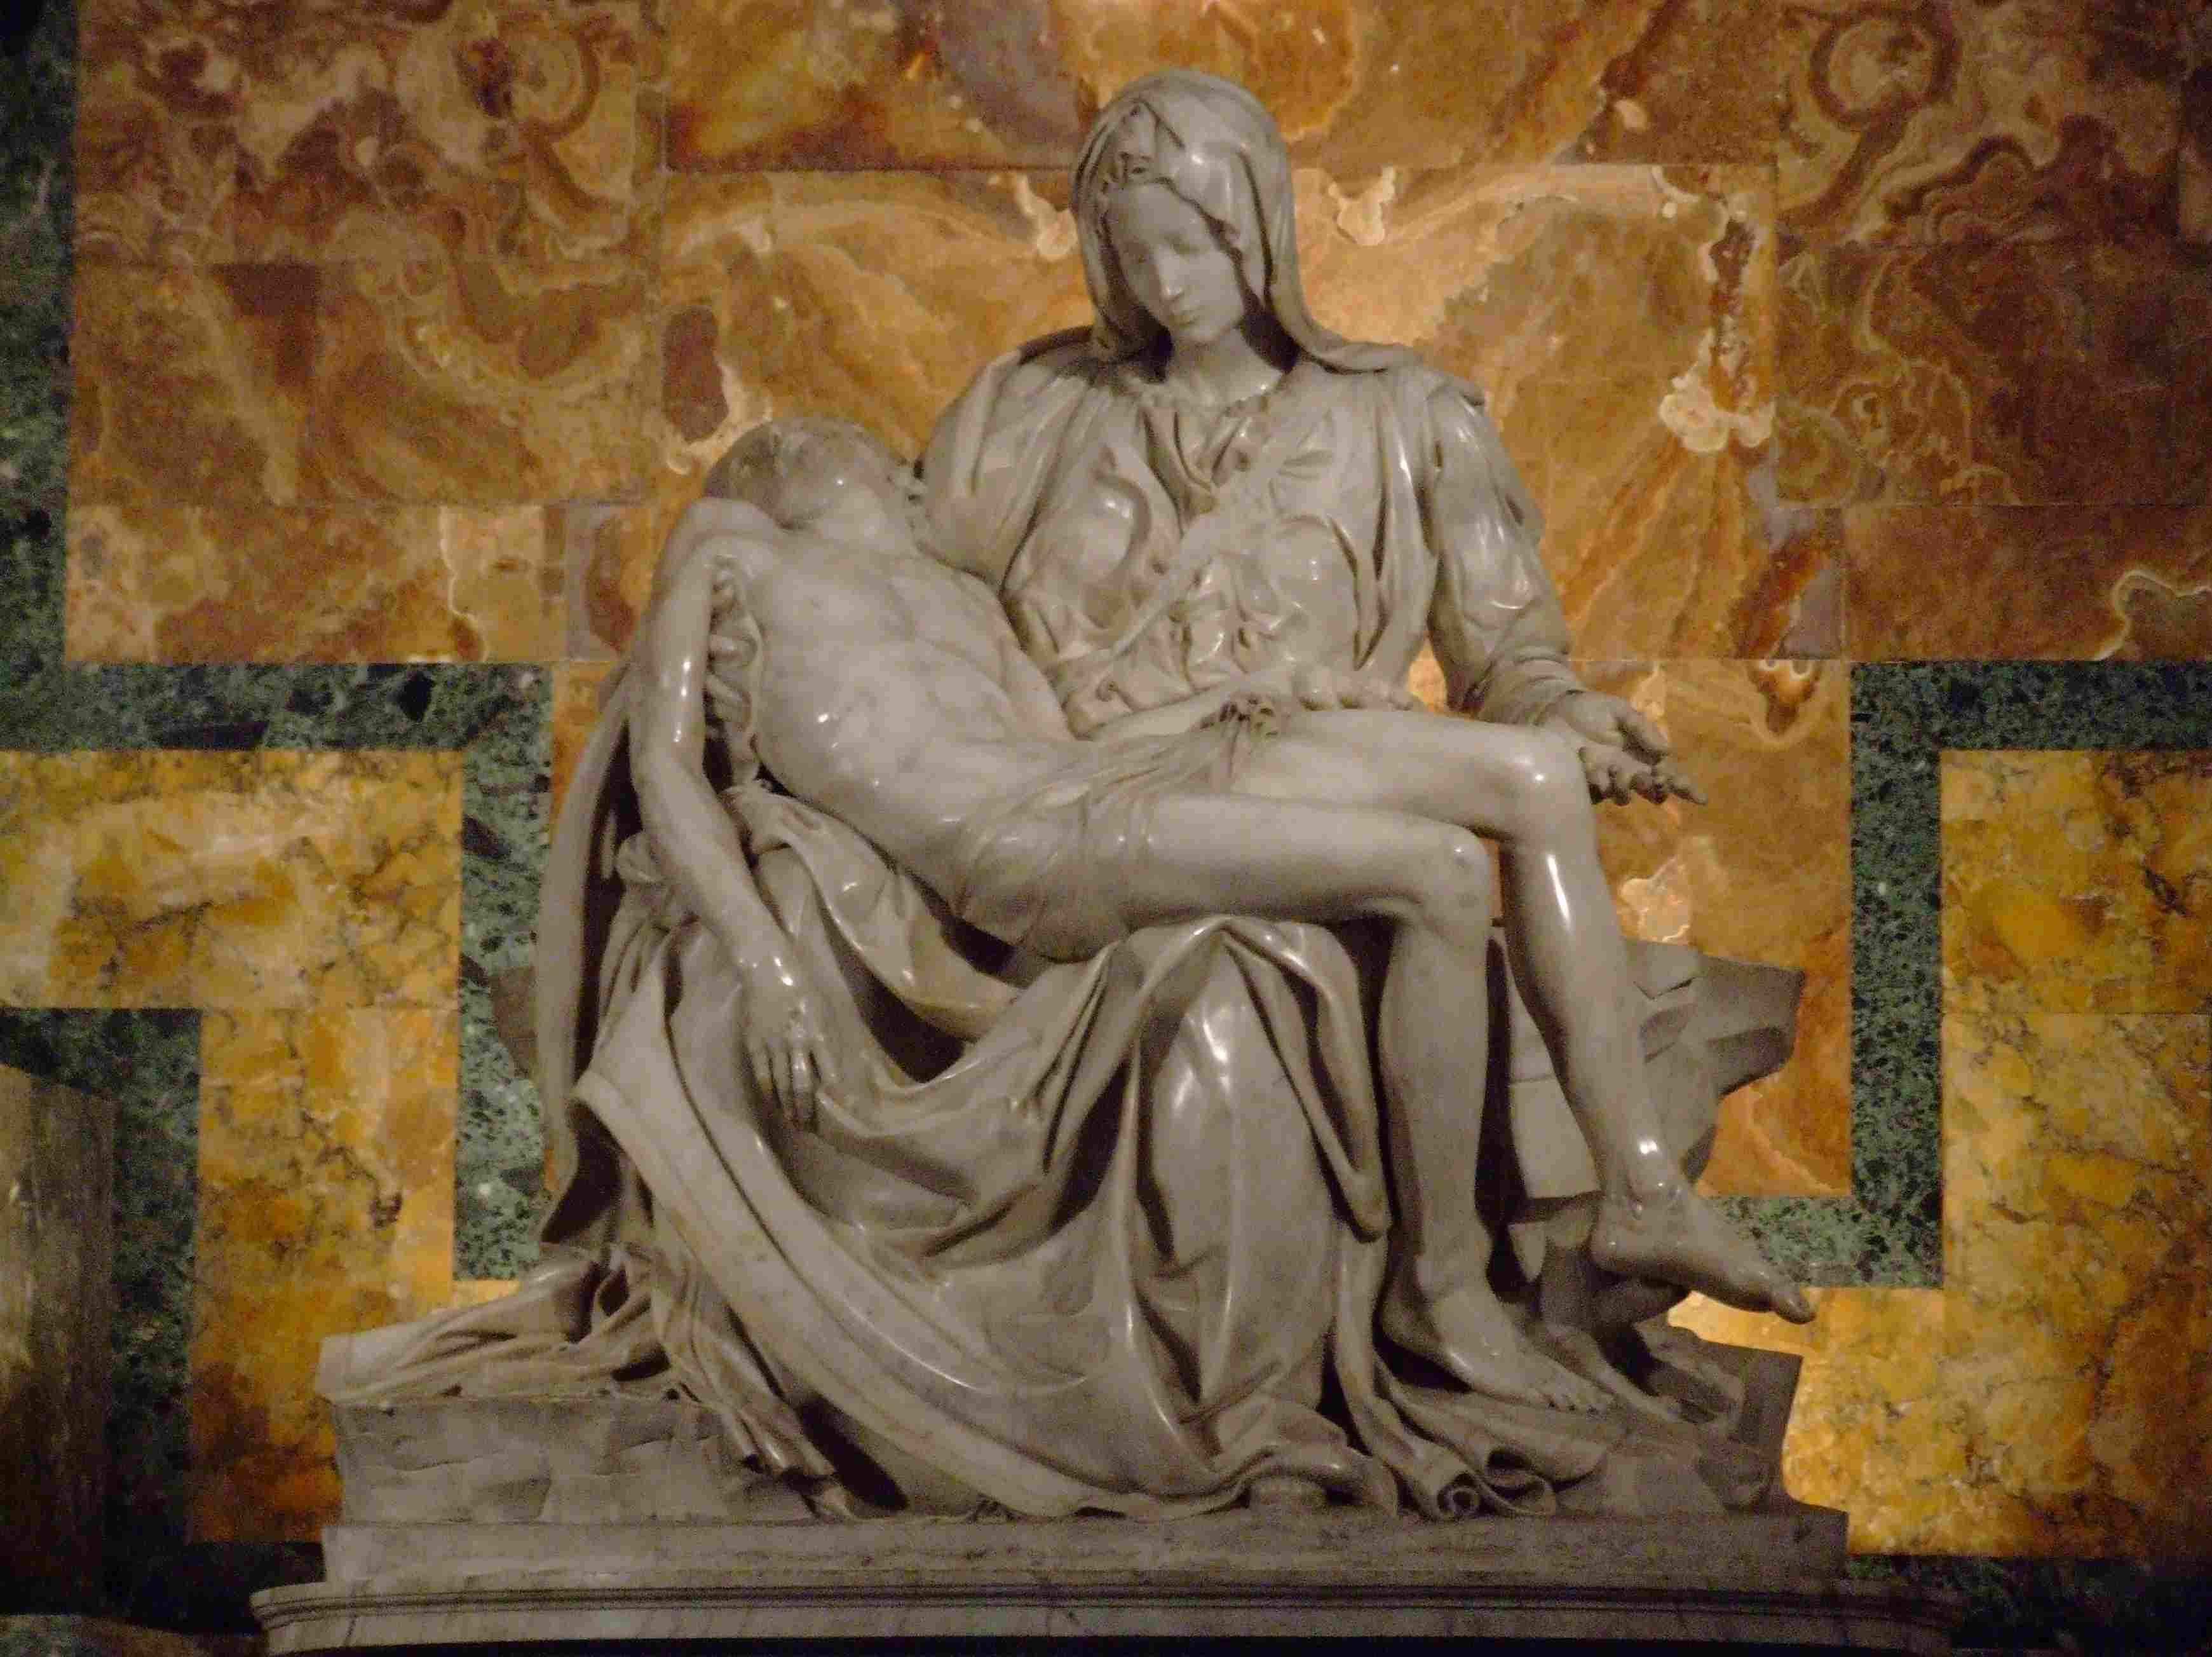 an examination of michelangelos pieta Pieta by michelangelo, st peter's basilica in rome michelangelo's pieta is widely held as his finest work, instantly becoming one of the most revered and studied works of the italian high renaissance.